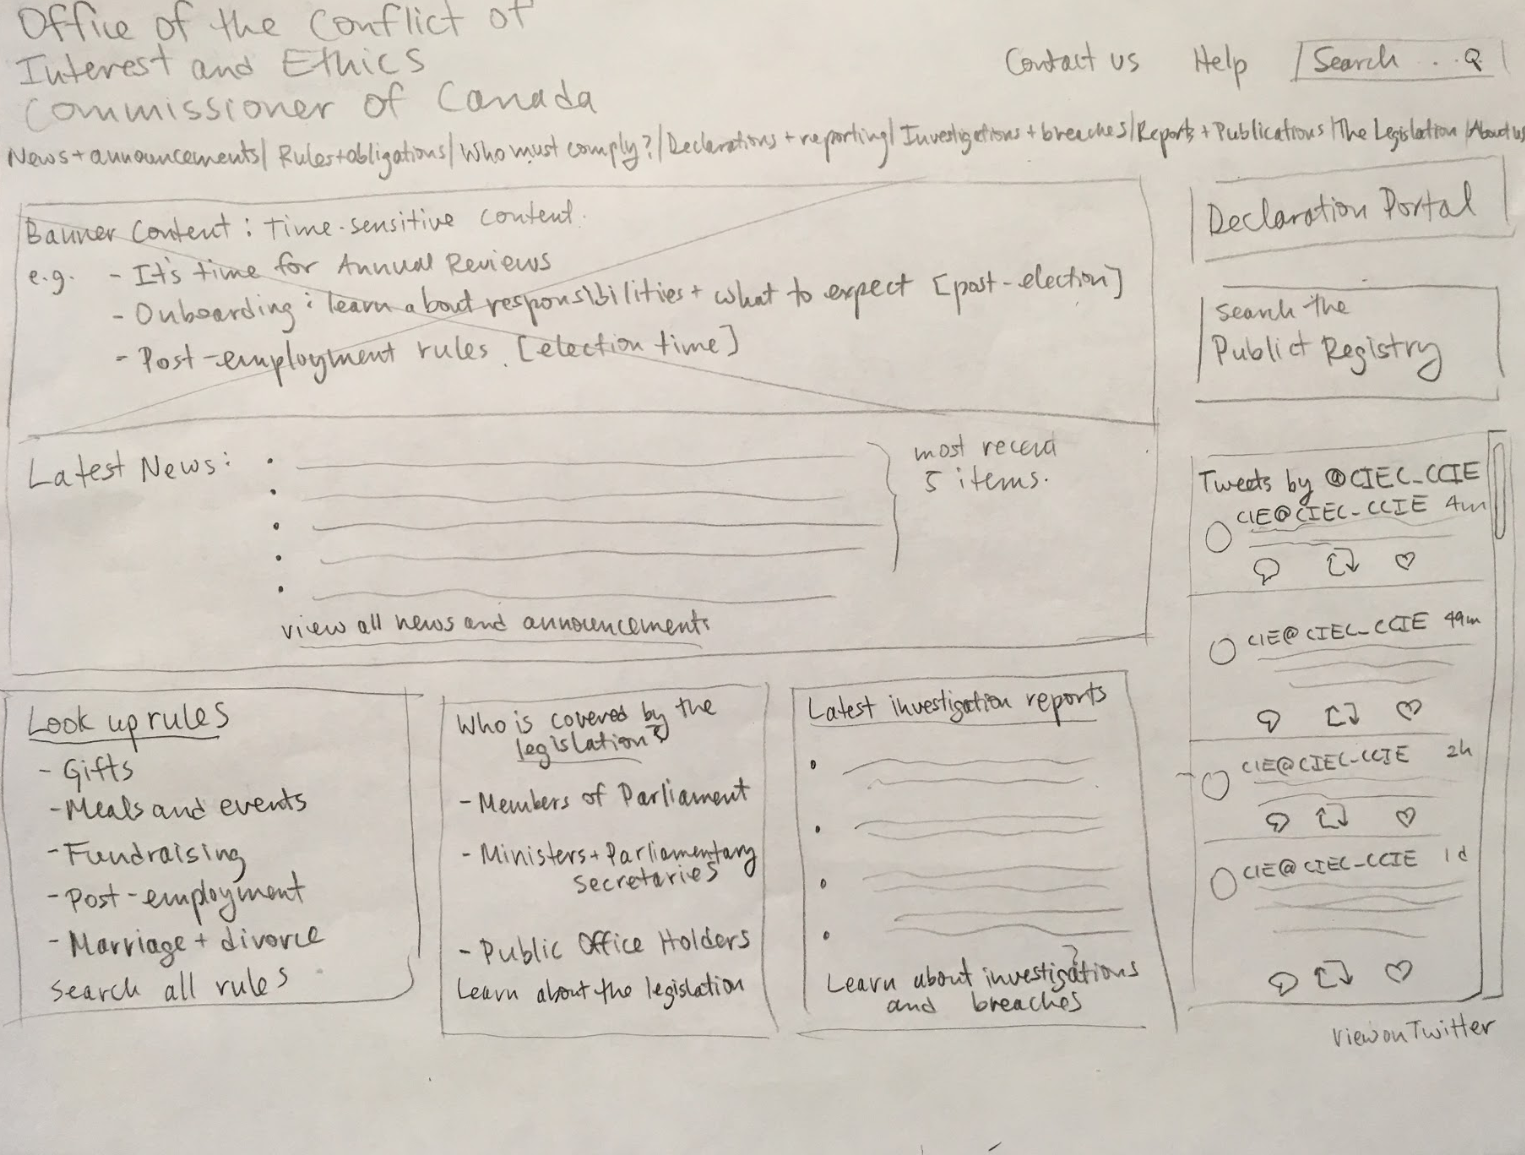 A wireframe of a new website design drawn on paper.